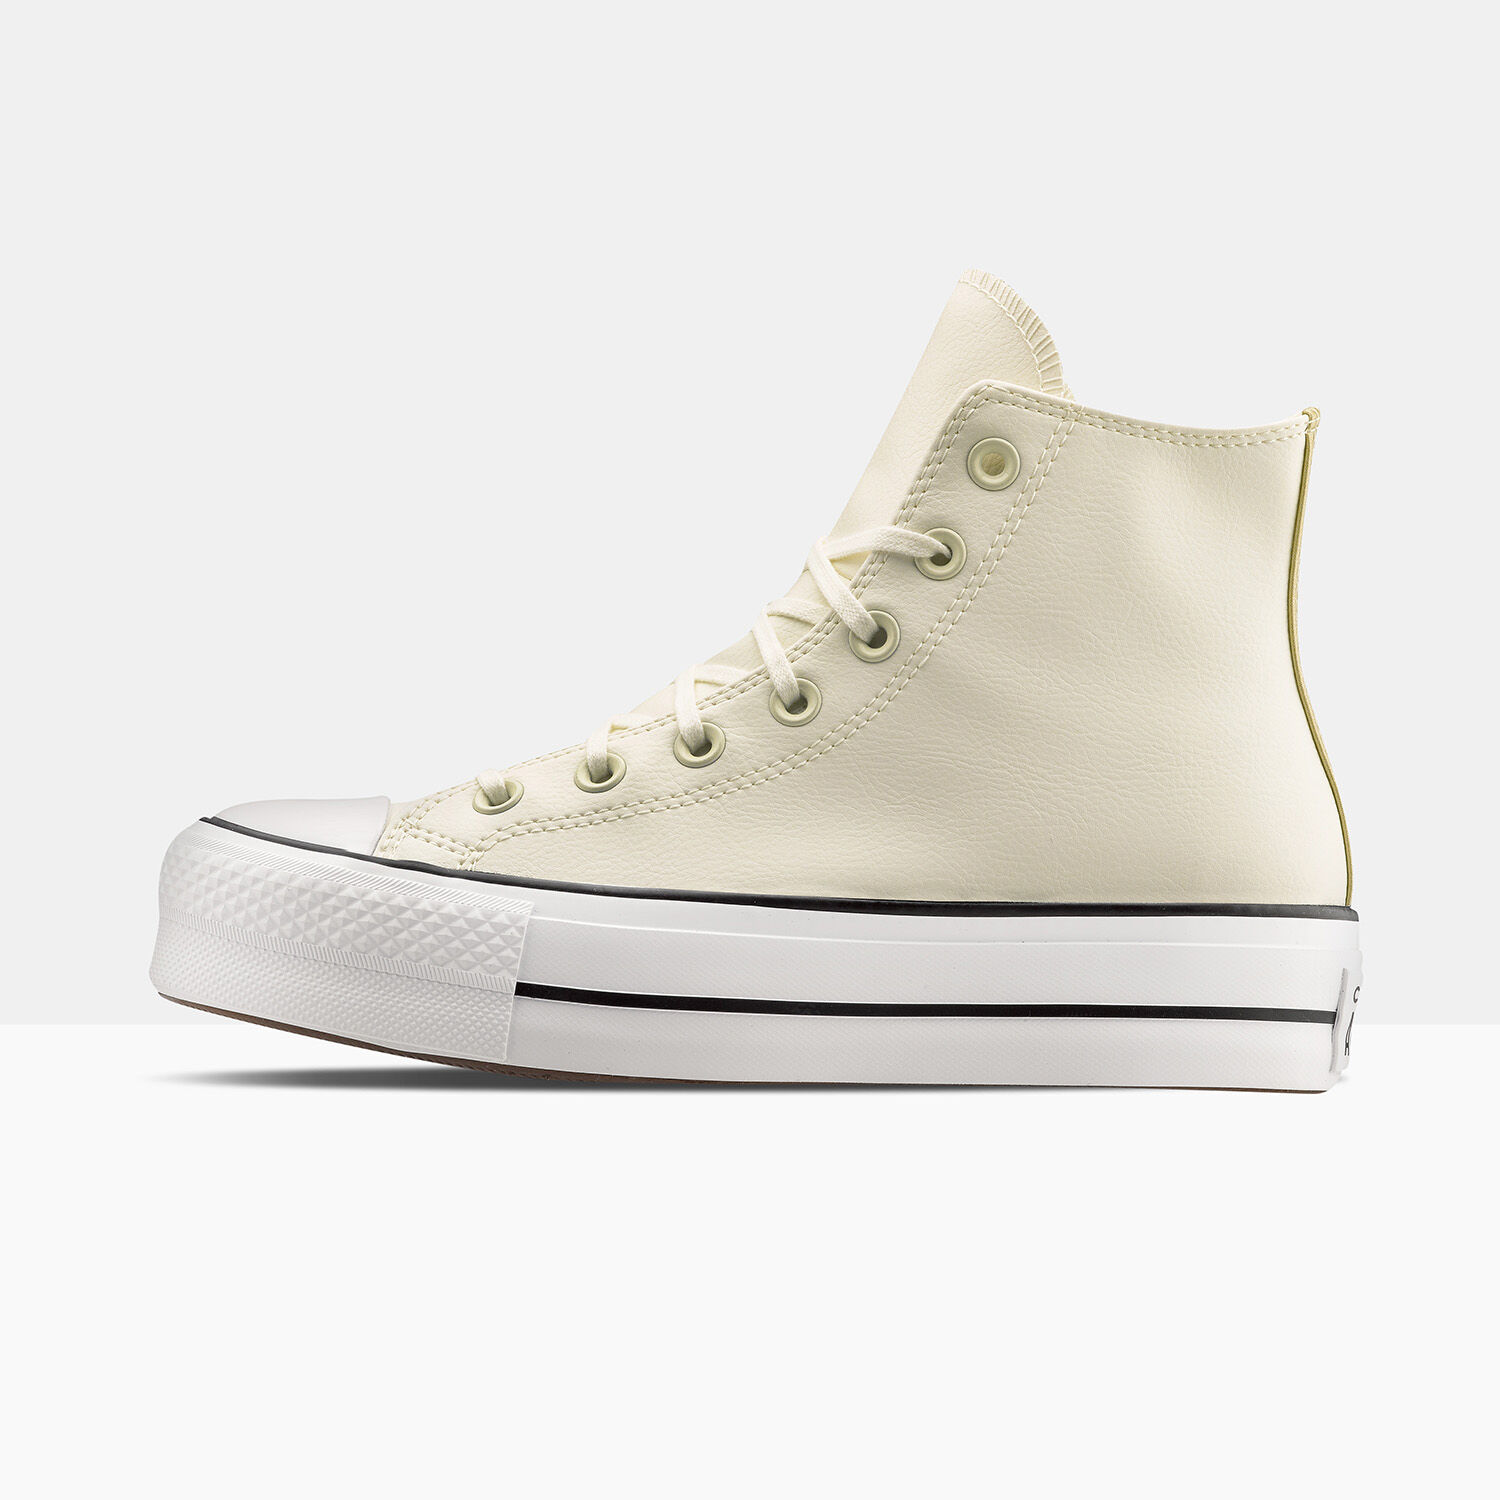 Converse Chuck Taylor All Star Lift off white - AW LAB